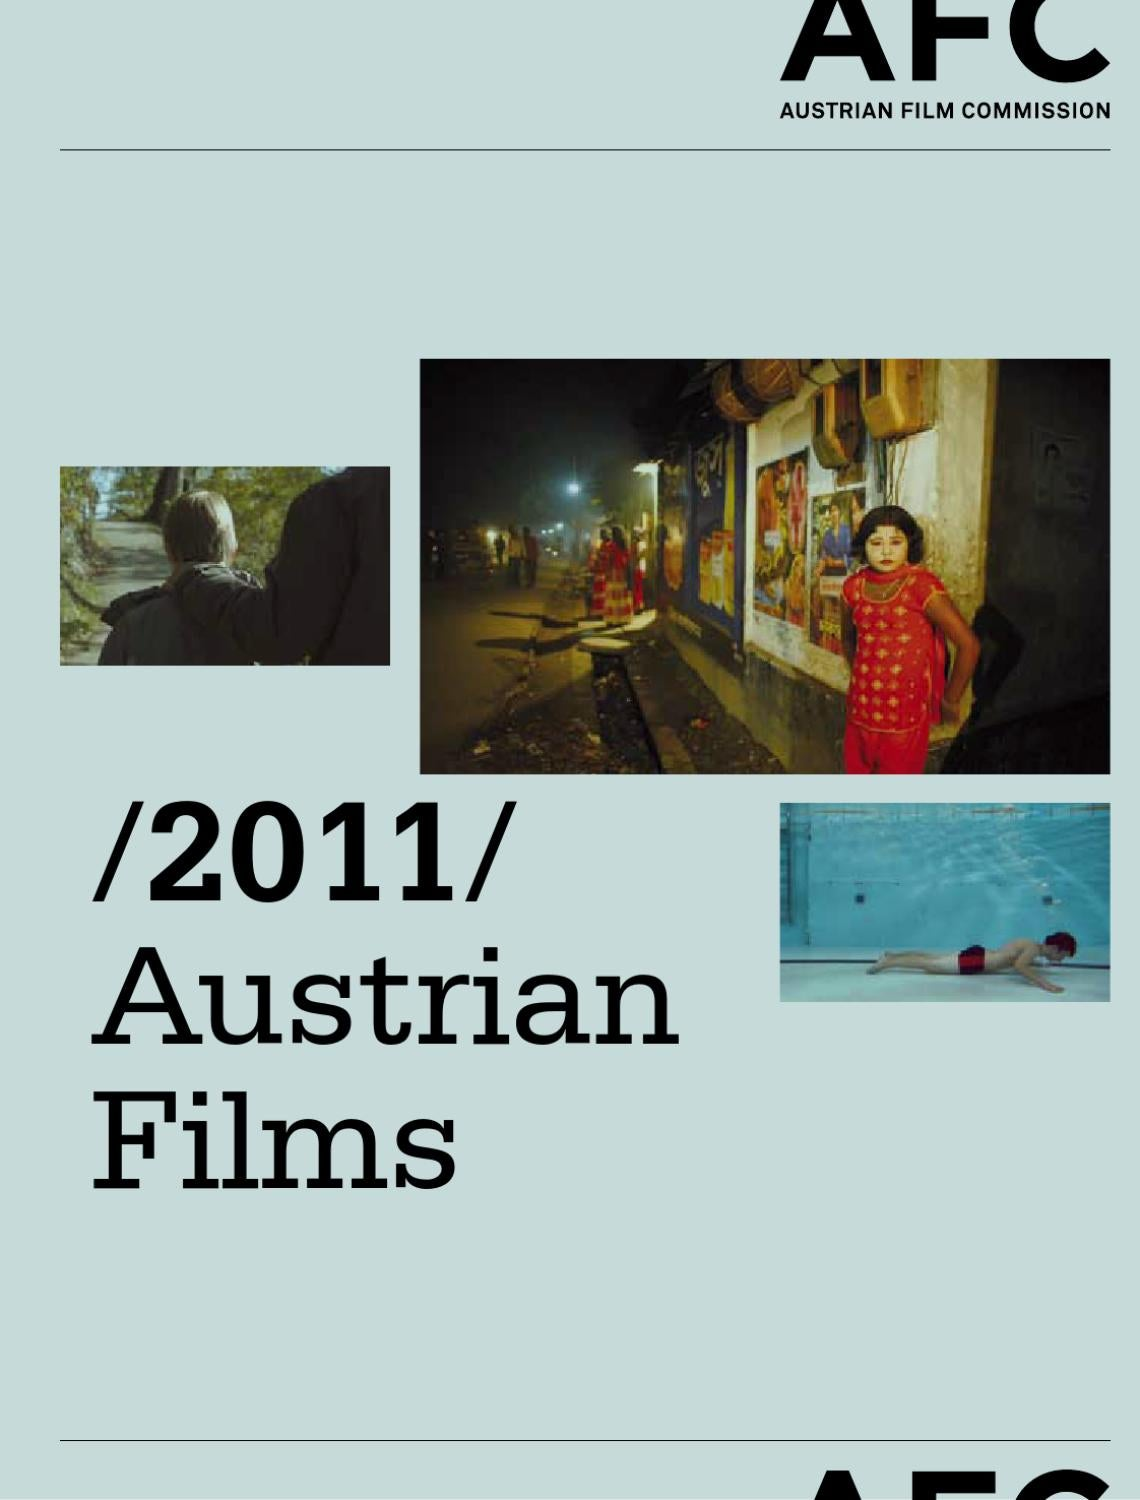 Angela Gregovic Nude austrian films 2011austrian film commission - issuu